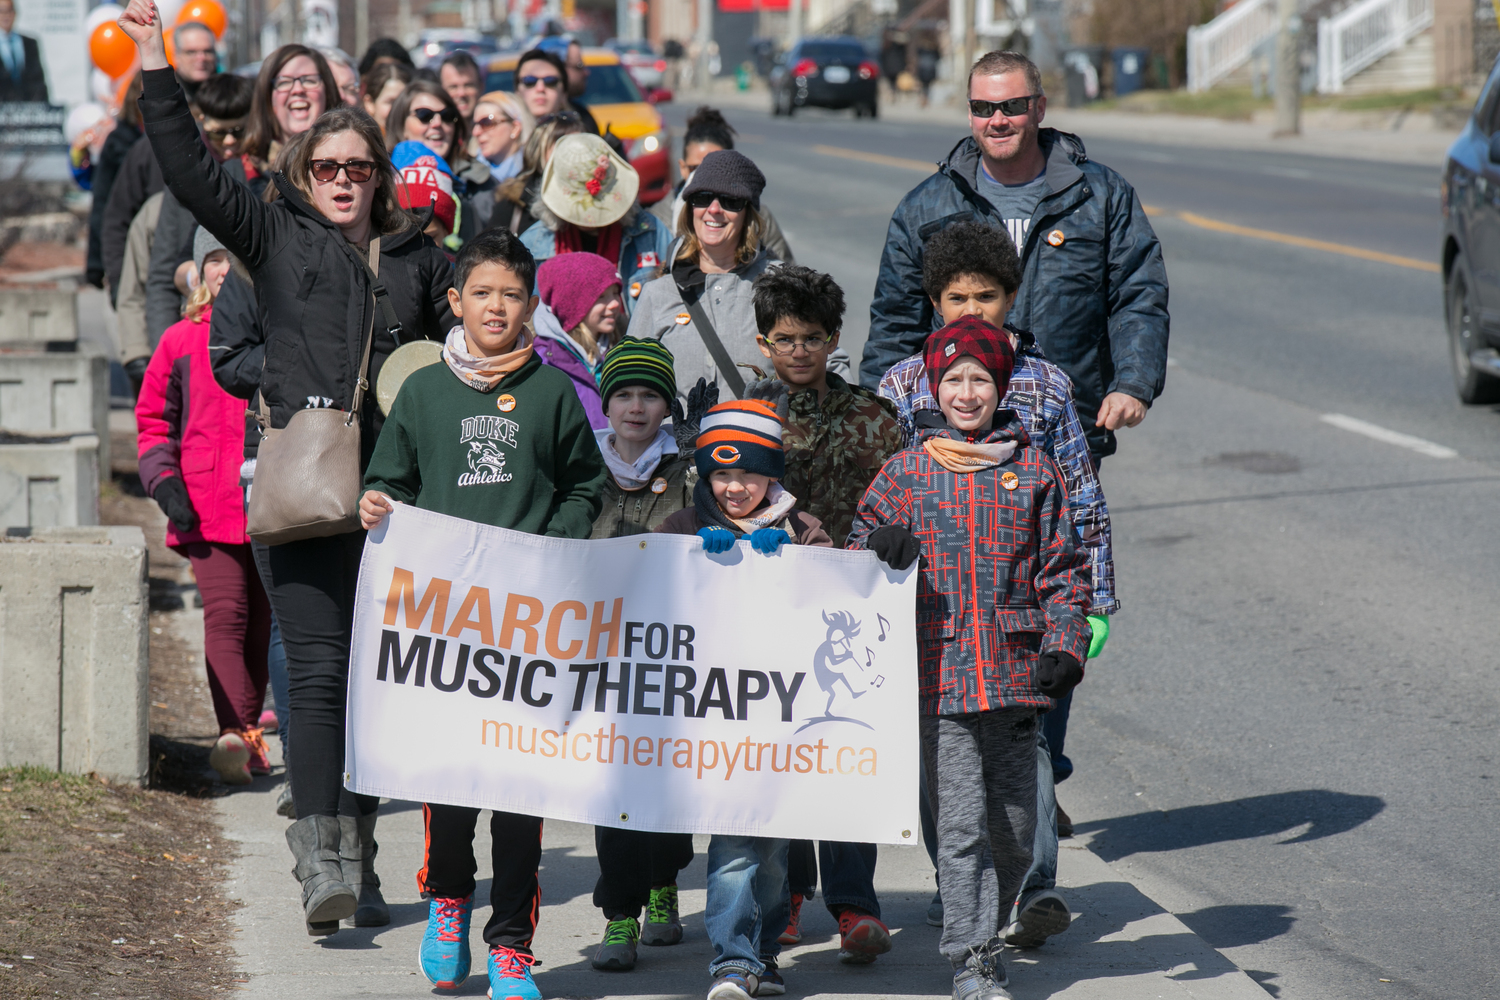 Music March for Music Therapy!